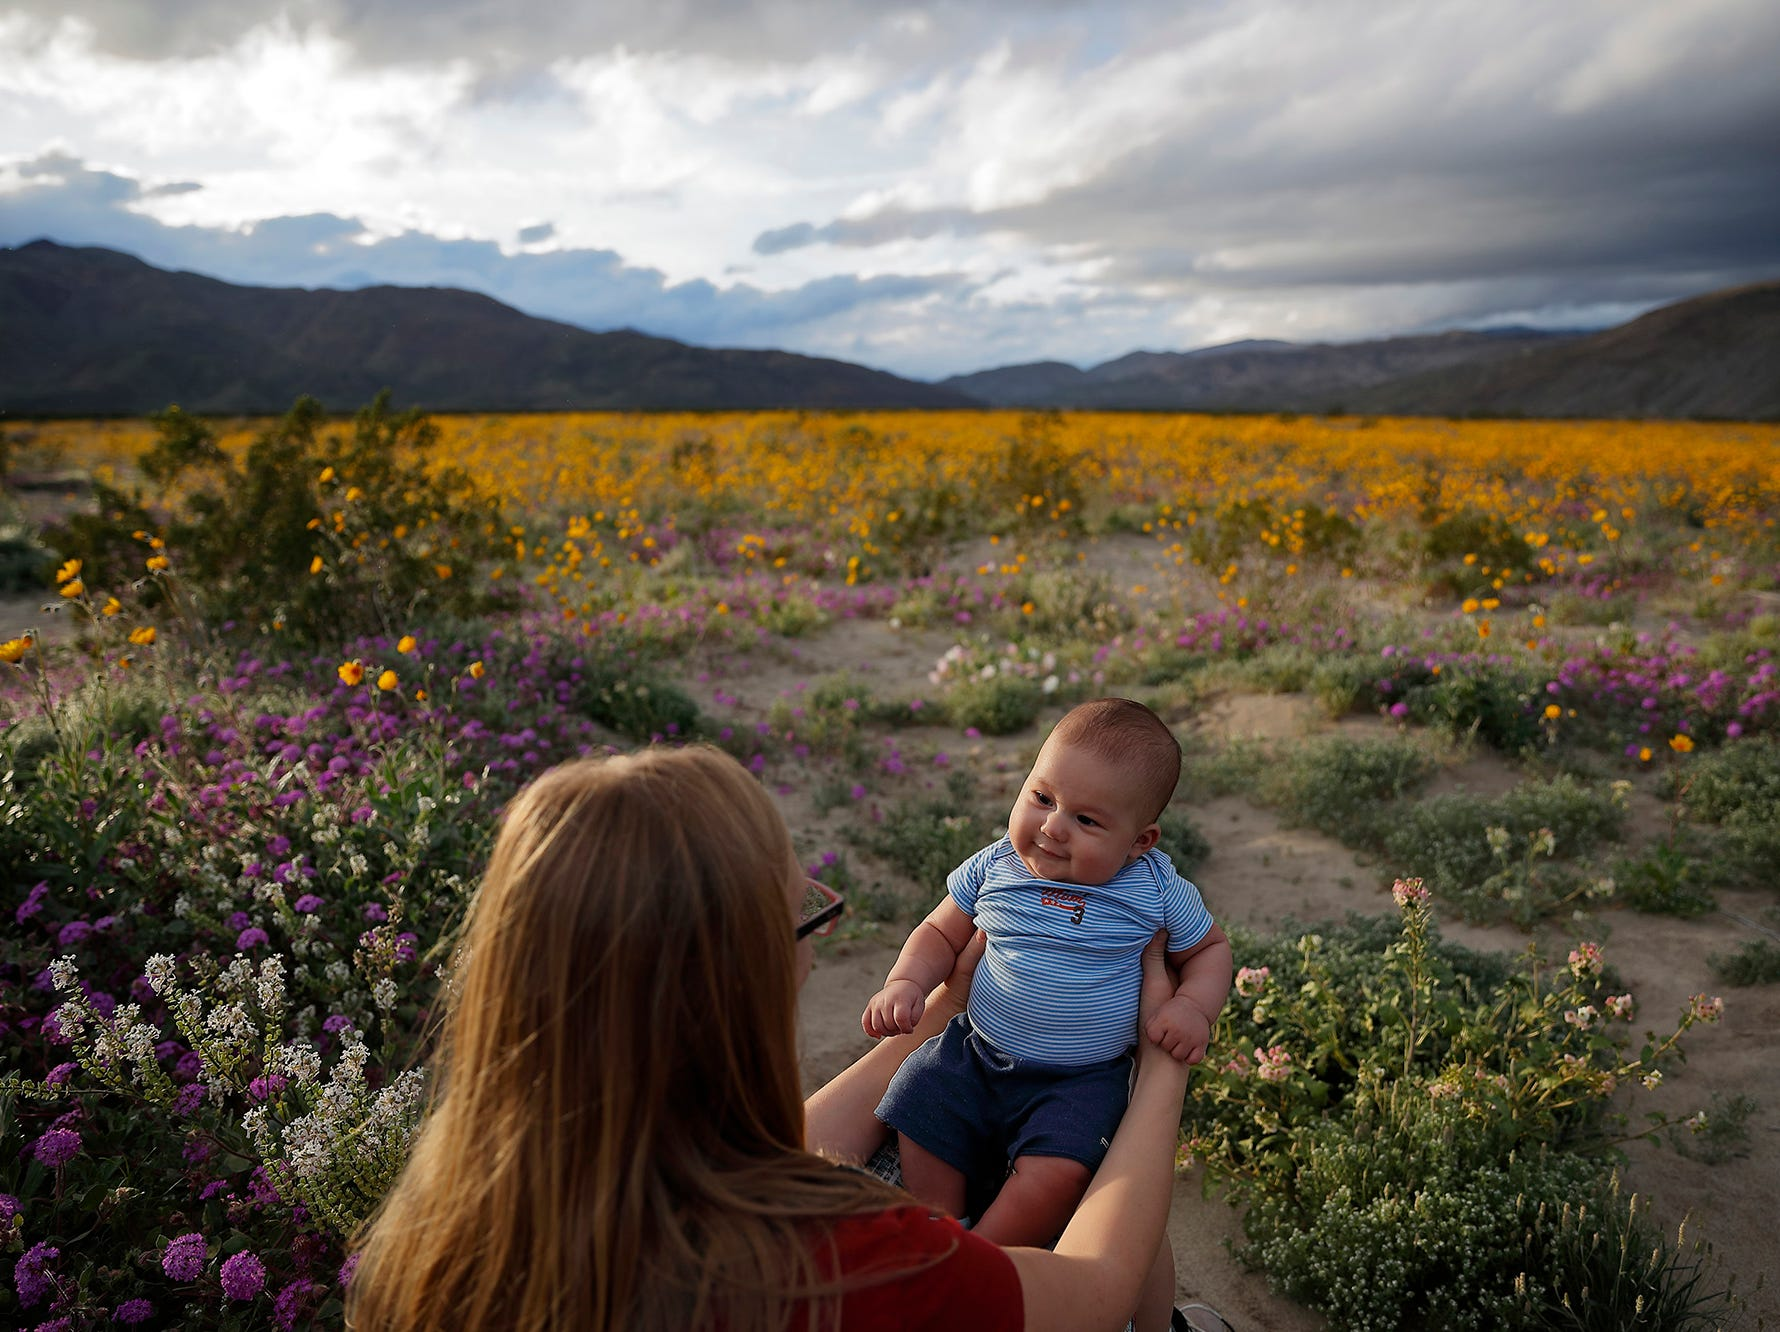 Rene Garcia holds her three-month-old son Brandon amid wildflowers in bloom near Borrego Springs, Calif. March 6, 2019.